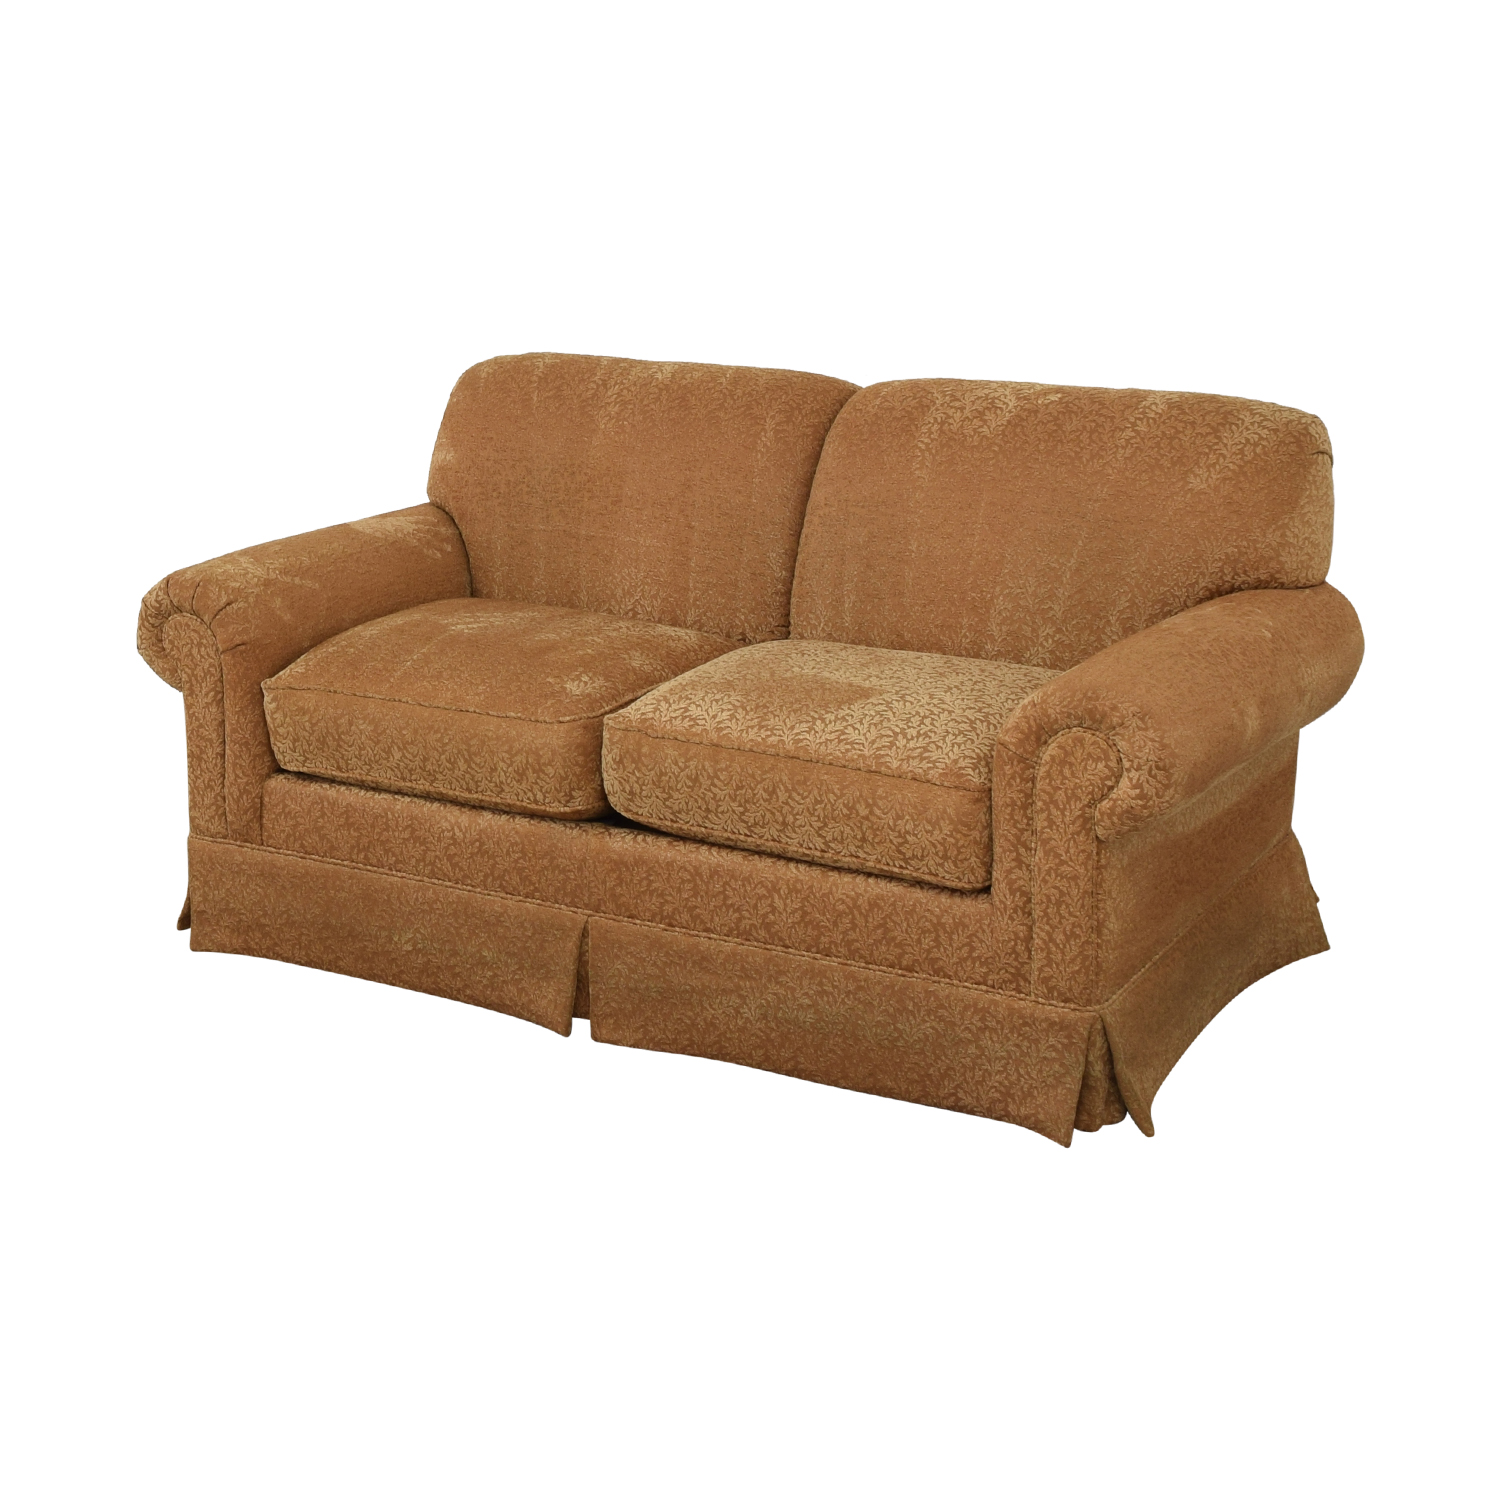 Thomasville Thomasville Lancaster Loveseat coupon